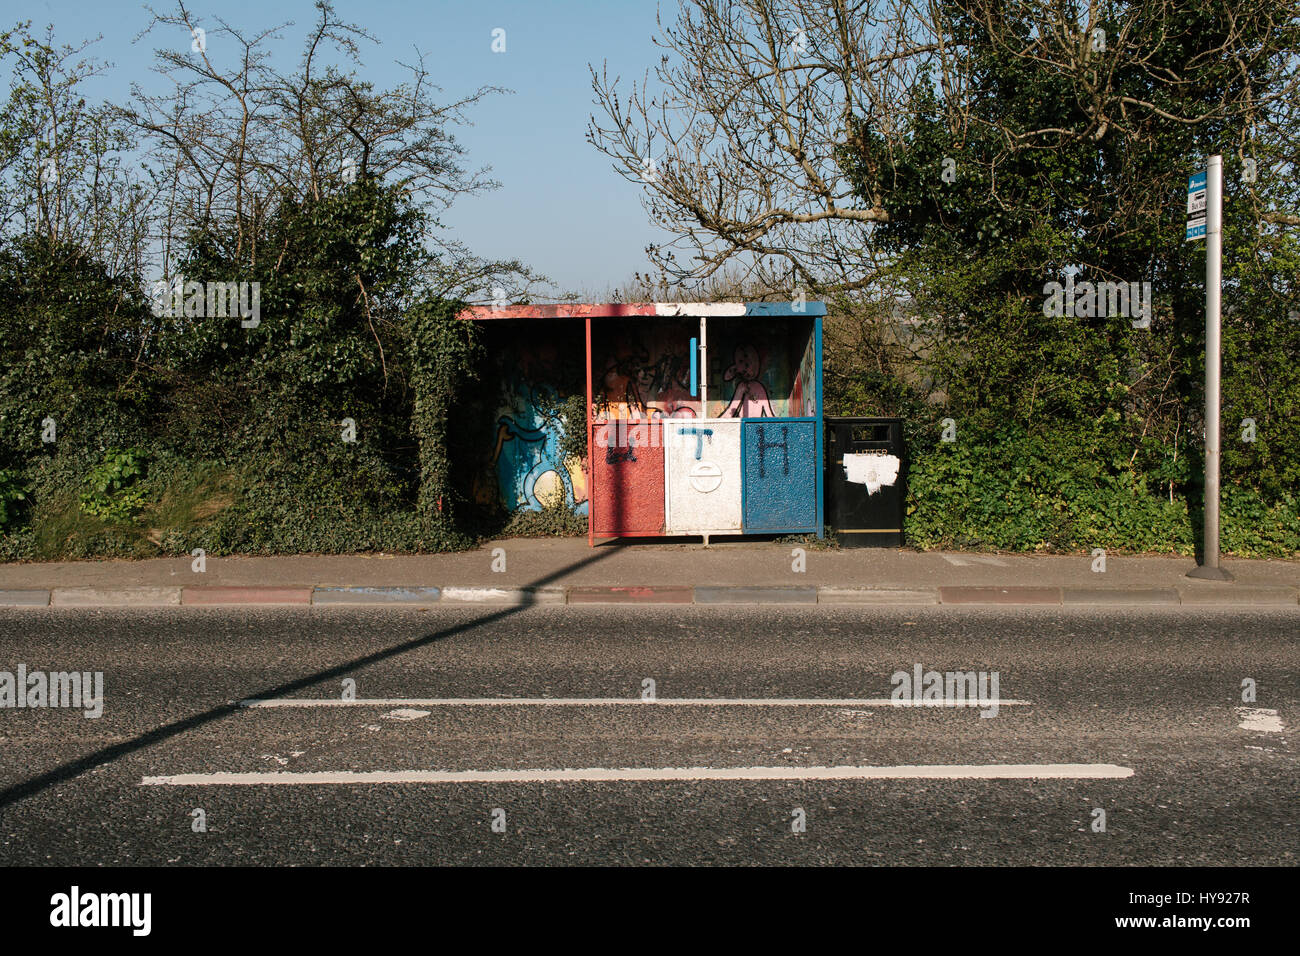 Loyalist colours painted on a bus stop near Londonderry, Northern Ireland. - Stock Image